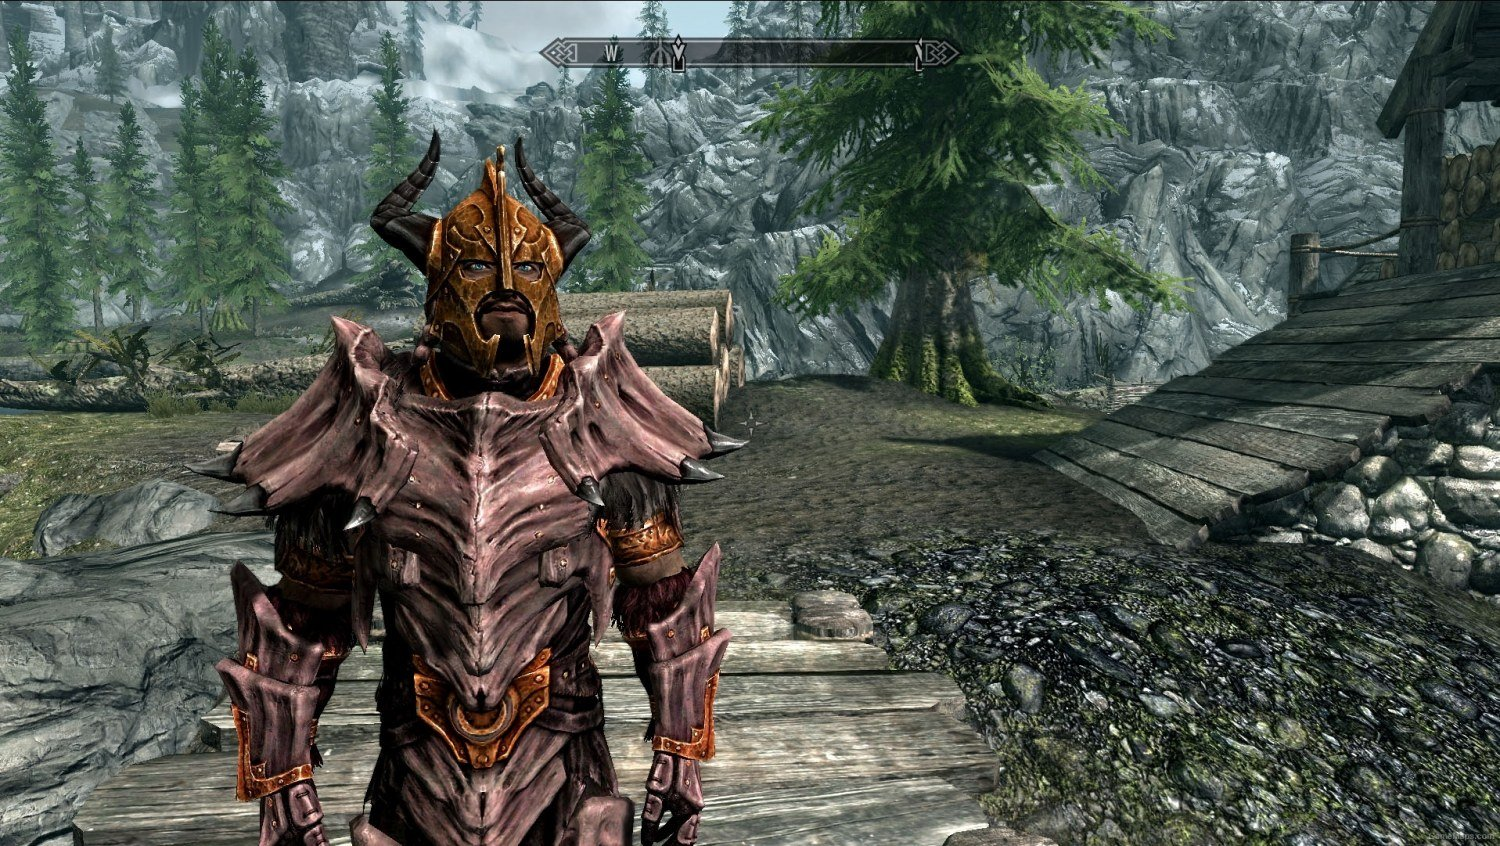 Dark Corundum Dragonbone Armor Skyrim Gamemaps Dragonplate armor is forged from dragon bones, dragon scales and leather strips. dark corundum dragonbone armor skyrim